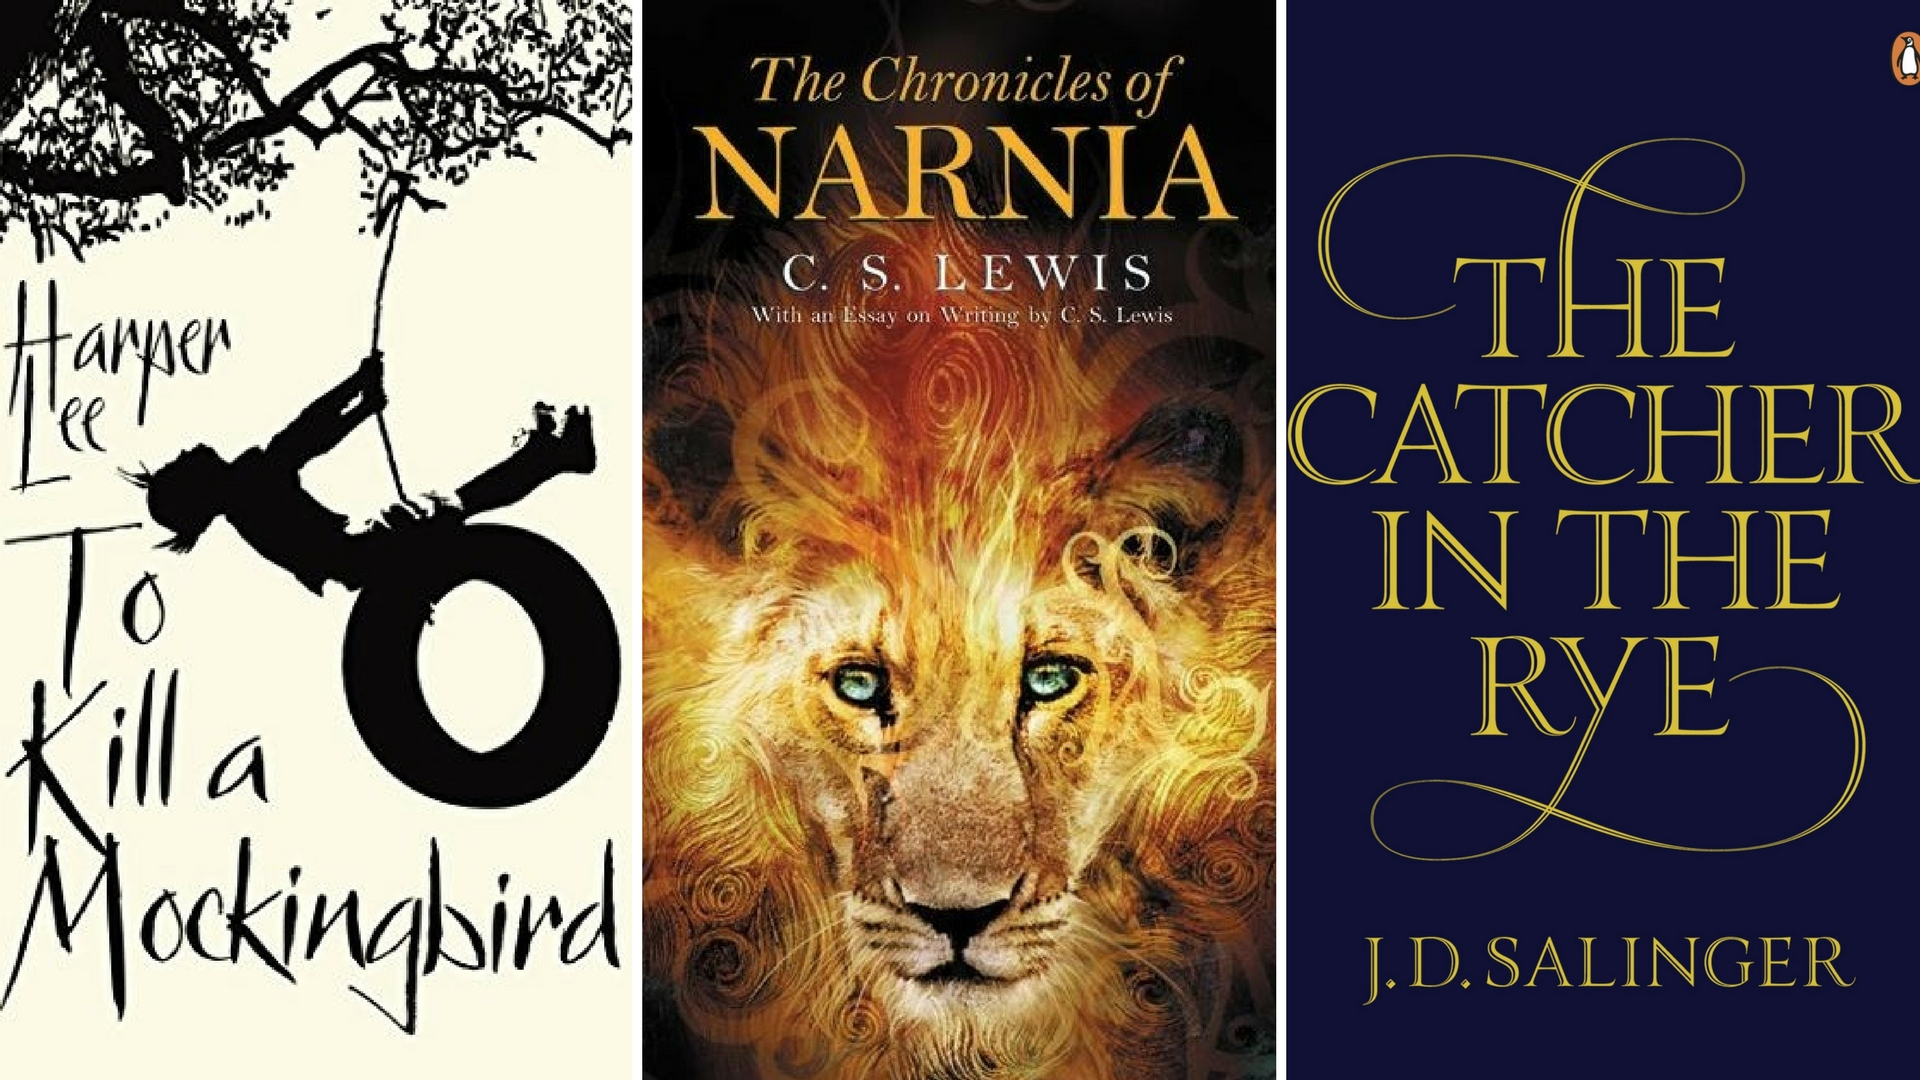 To Kill a Mockingbird, Chronicals of Narnia, The Catcher and the Rye